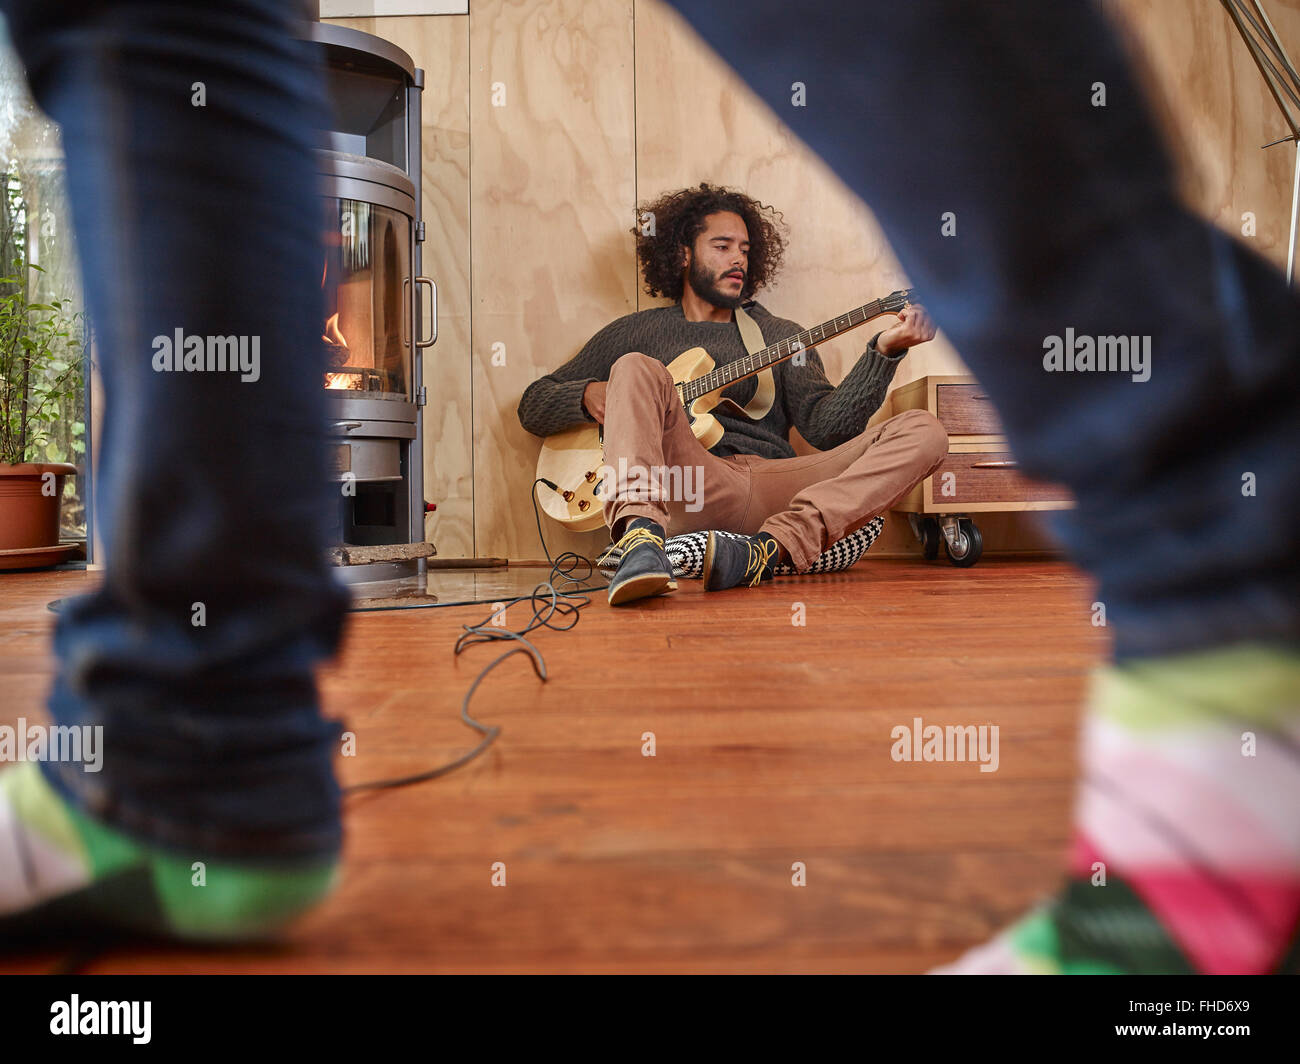 Young man playing electric guitar at the fireplace with person in the foreground - Stock Image